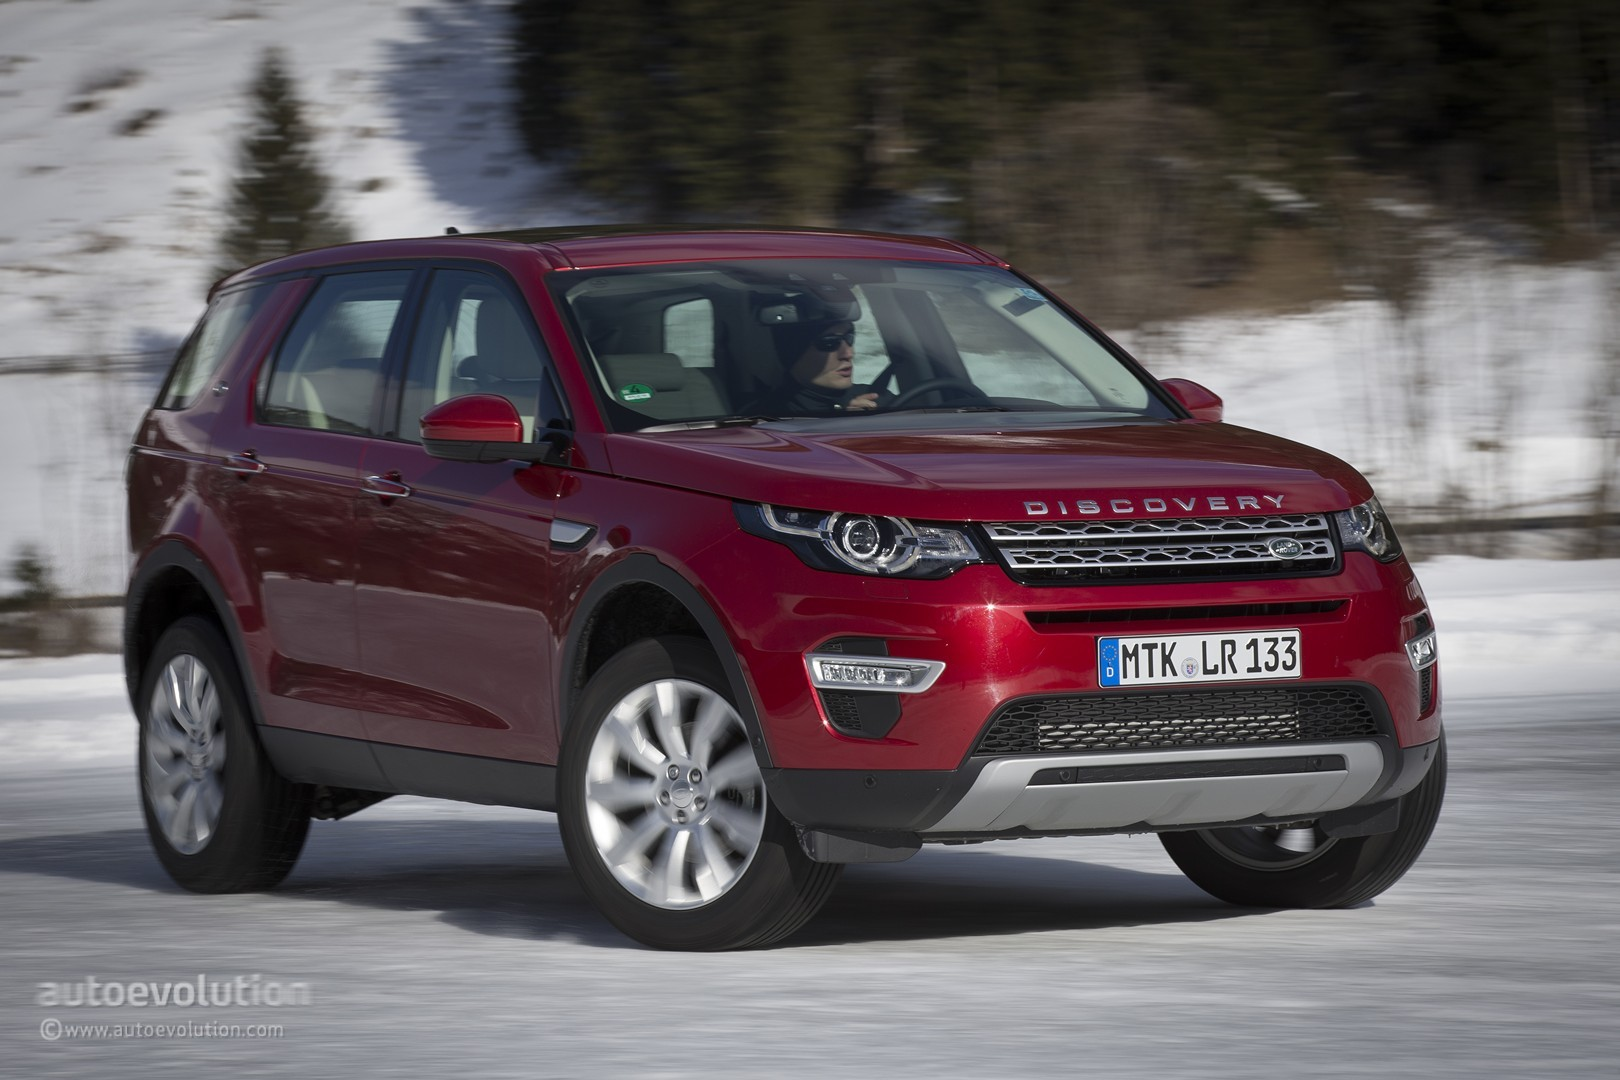 https://s1.cdn.autoevolution.com/images/testdrive/gallery/land-rover-discovery-sport-review-2015_15.jpg